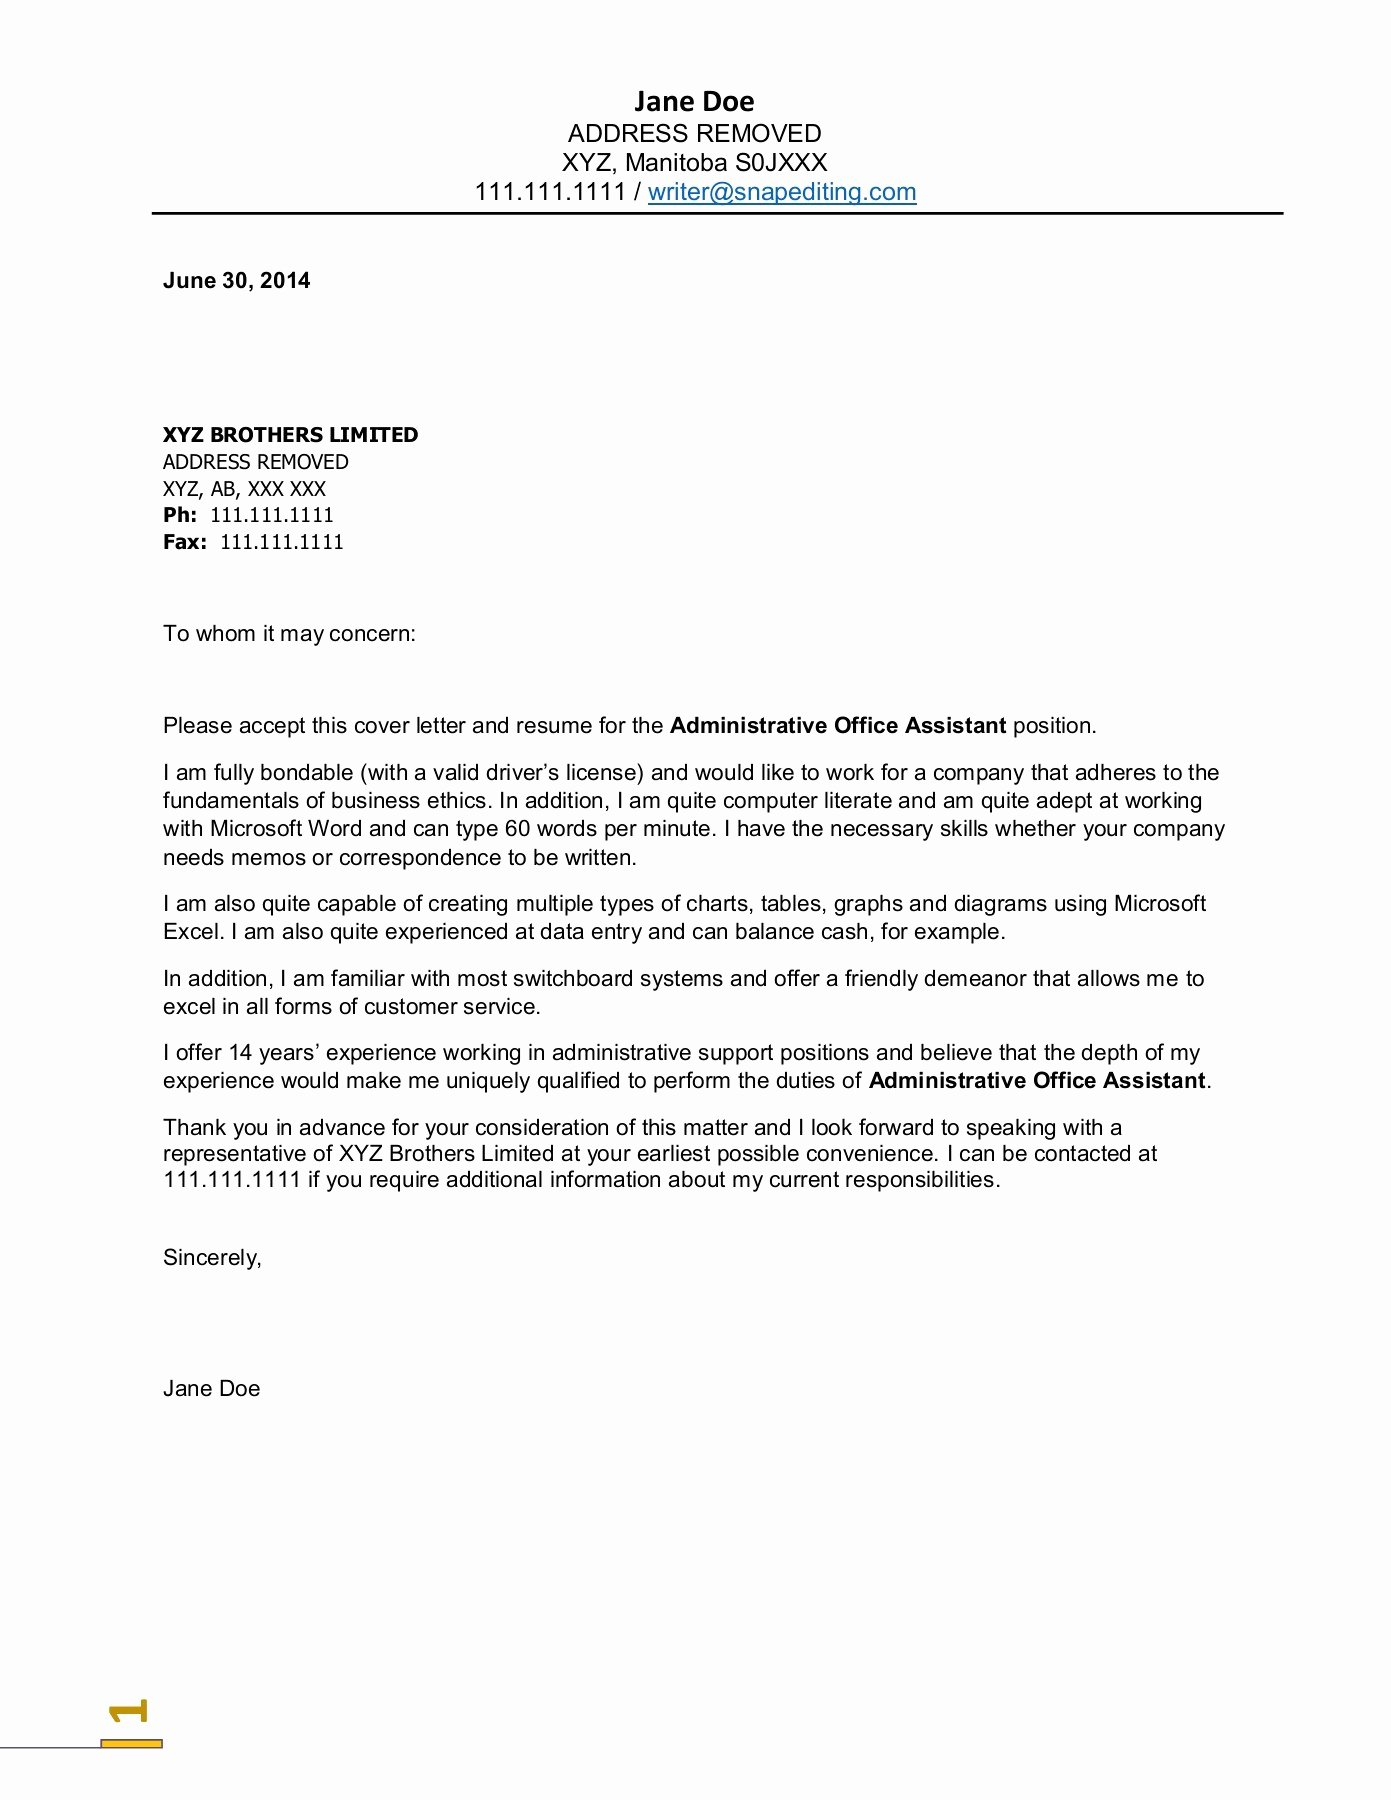 School Administrative assistant Cover Letter Unique Administrative assistant Reference Letter Cover Letter